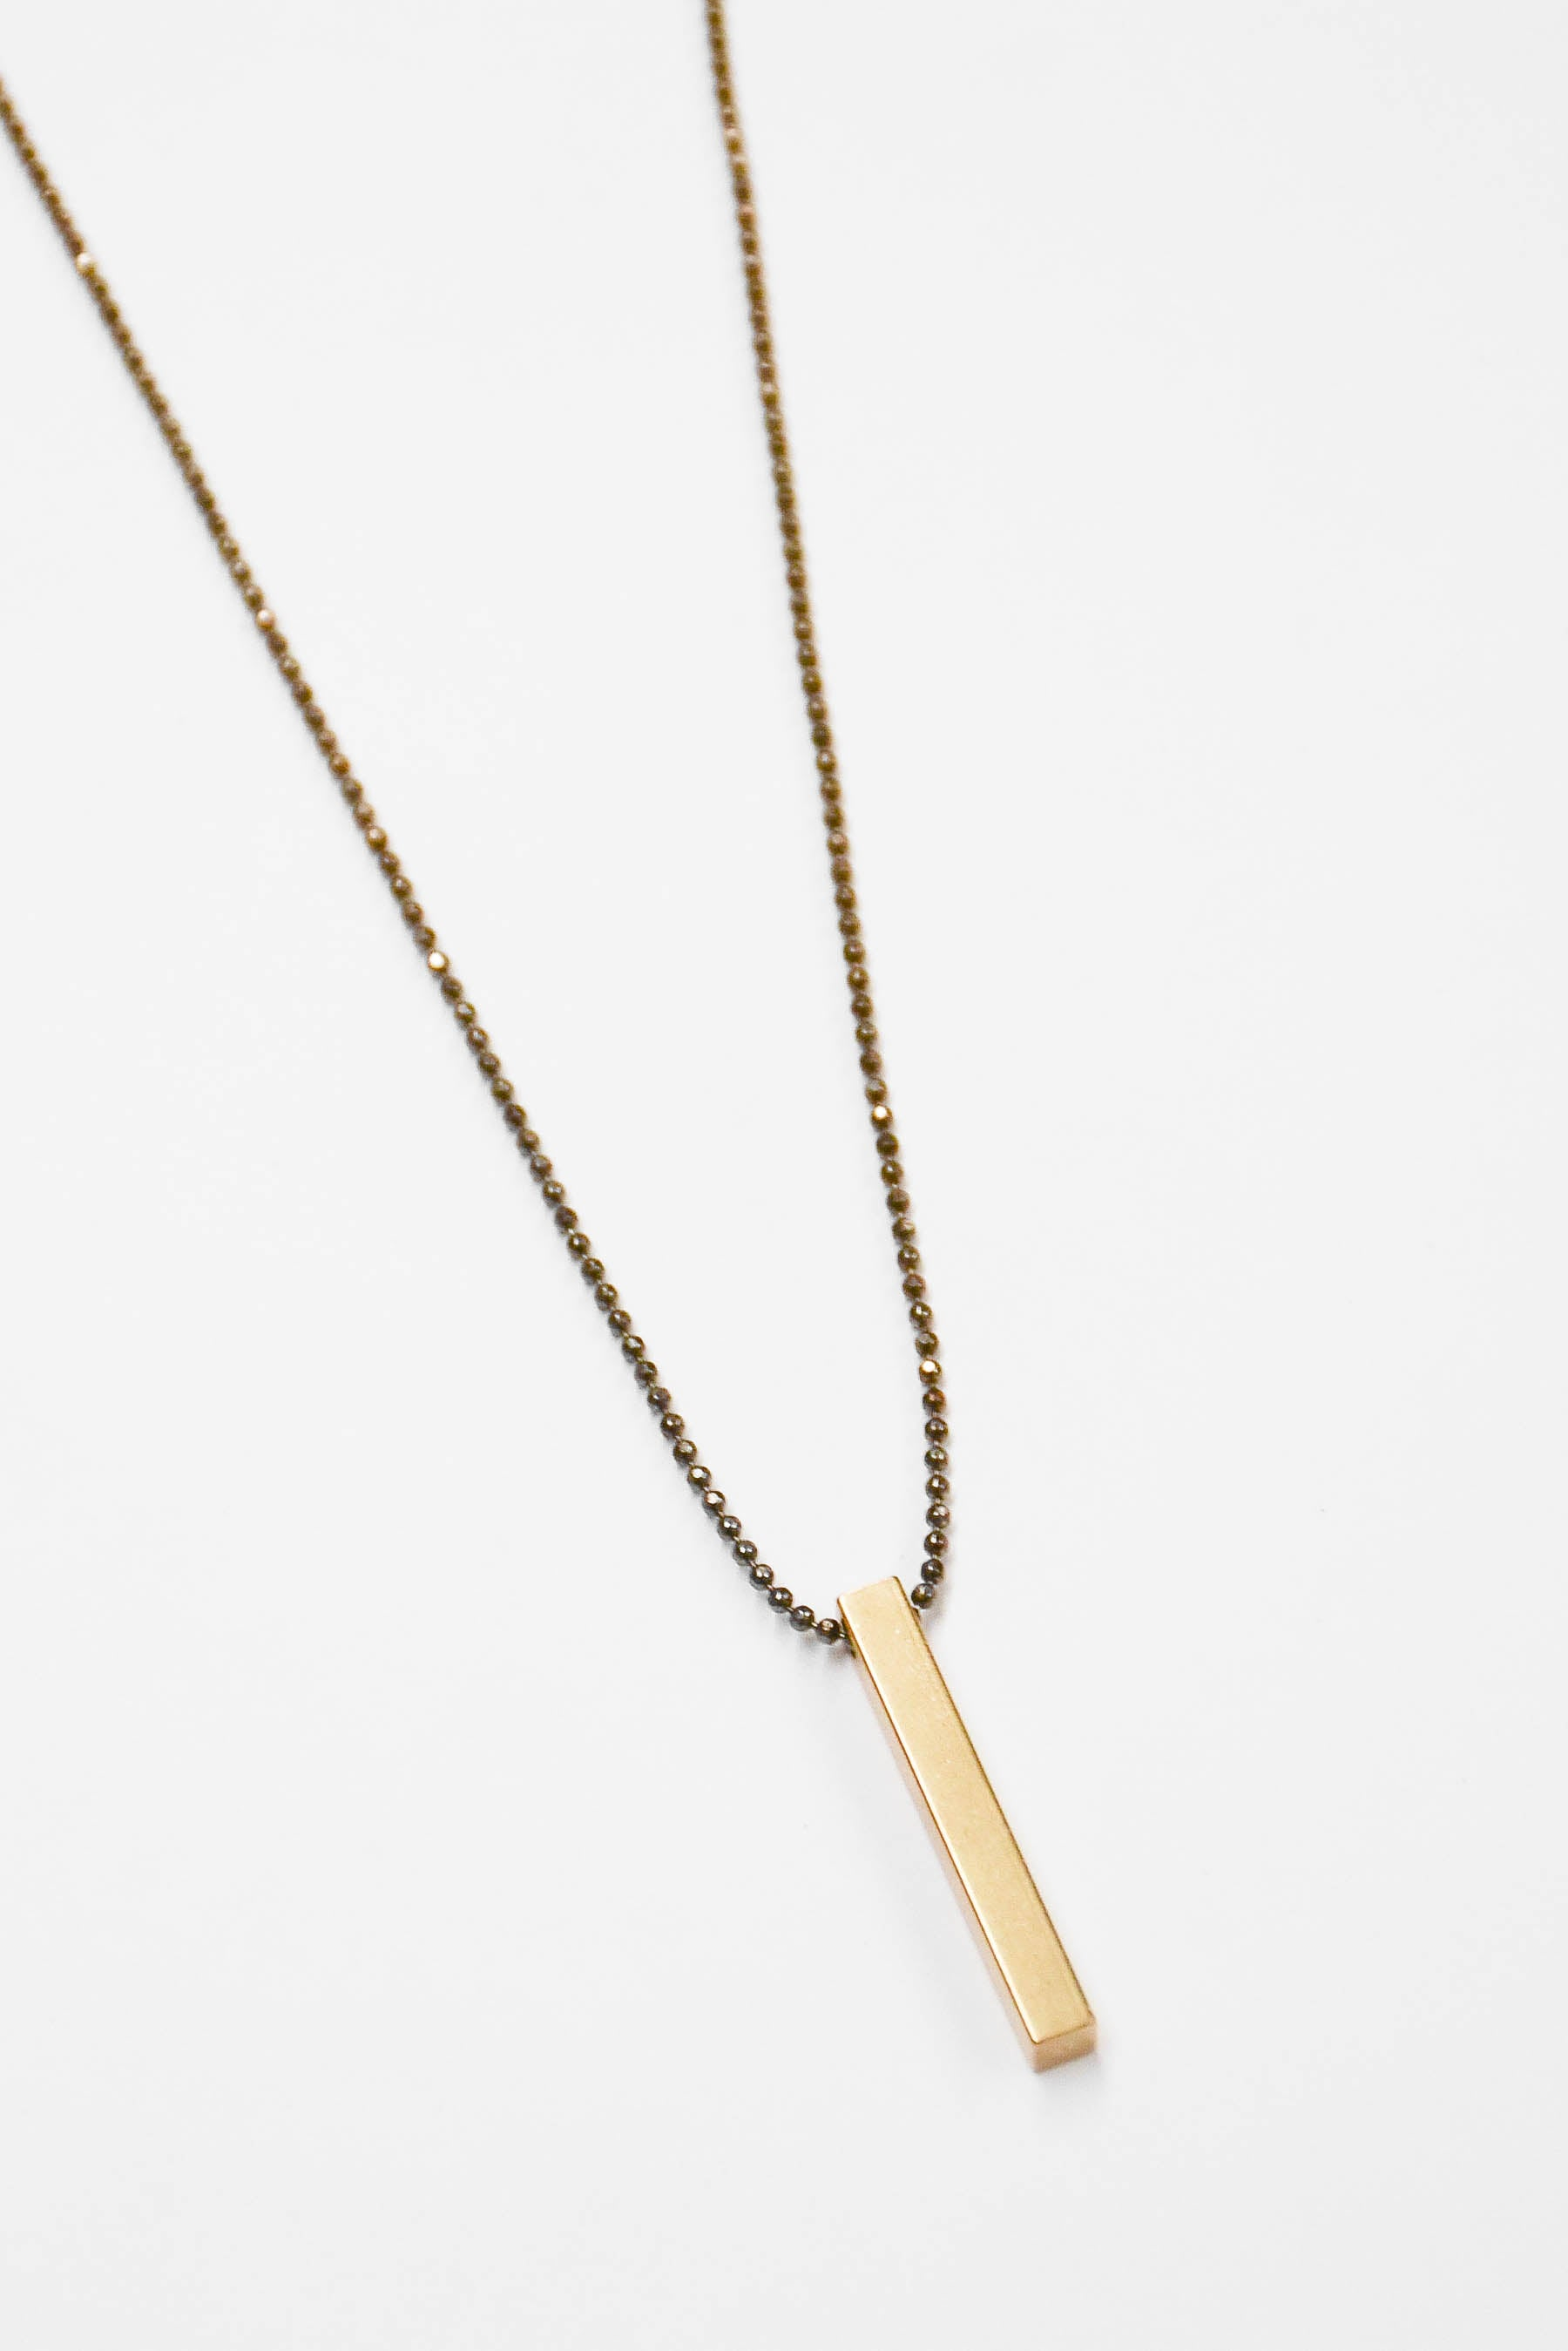 Santore Gold Bar Necklace